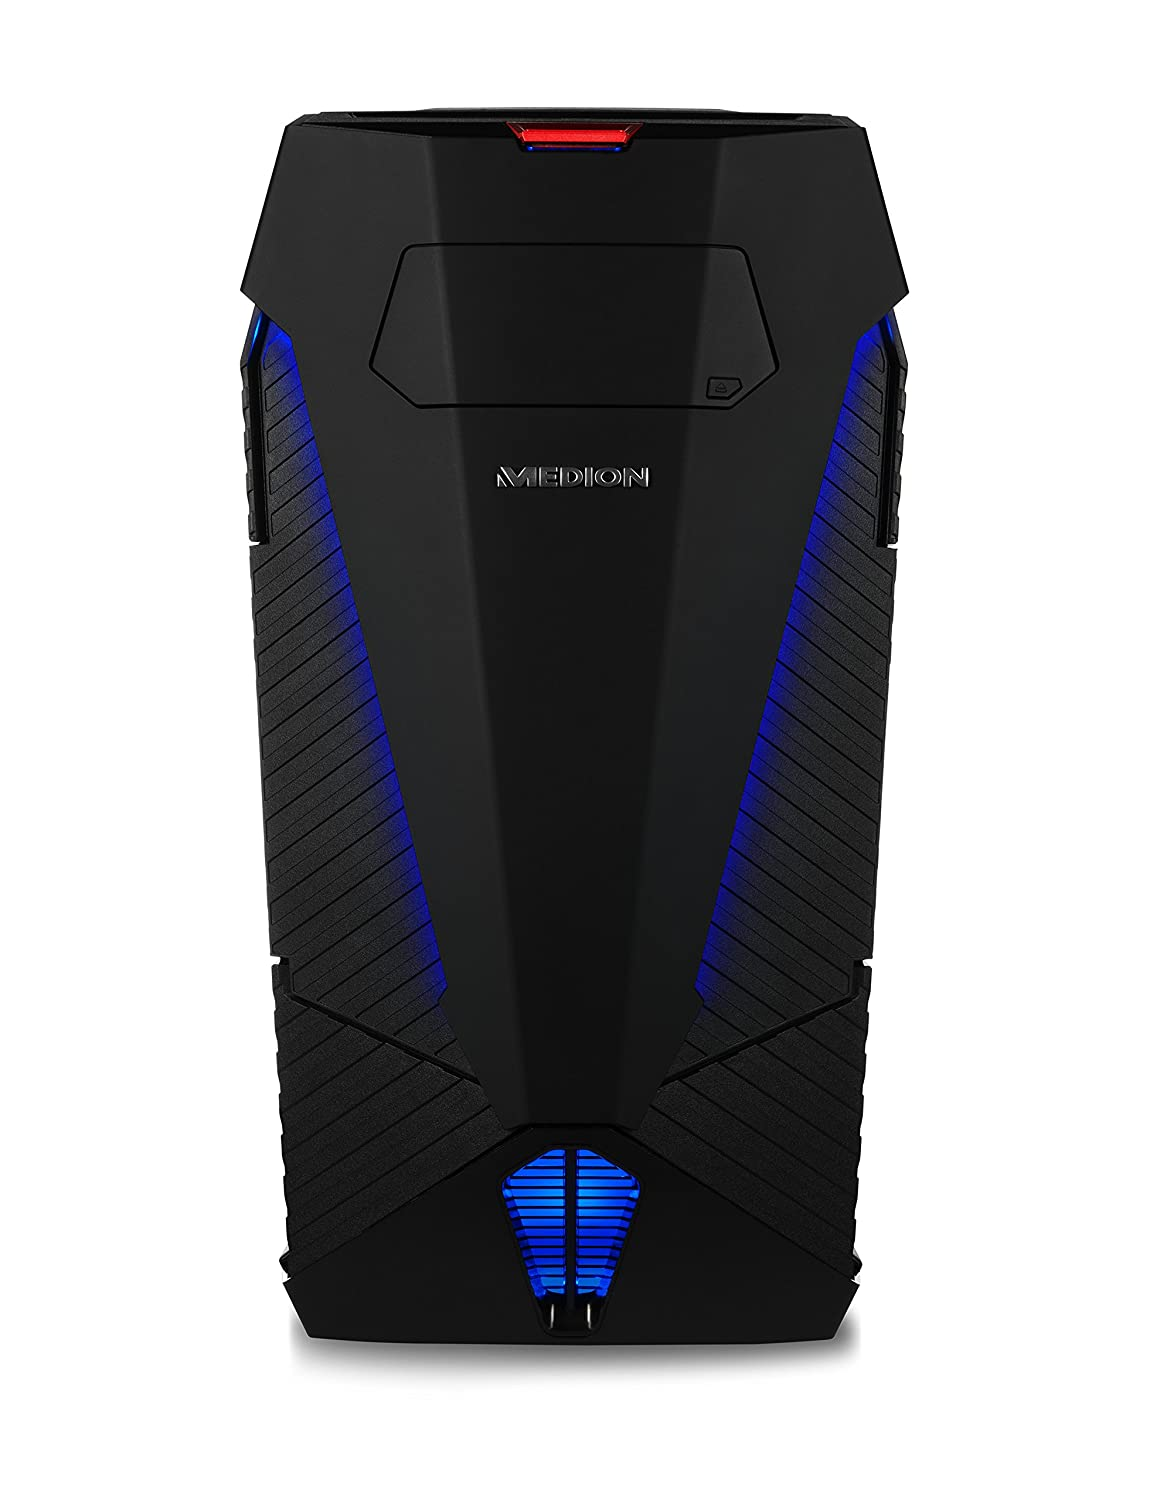 Medion Erazer - Ordenador de sobremesa Gaming (Intel Core i7-8700, 16 GB RAM, 256 GB SSD, 2 TB HDD, Nvidia GeForce GTX 1080 de 8 GB, Windows 10 Home), Color Negro